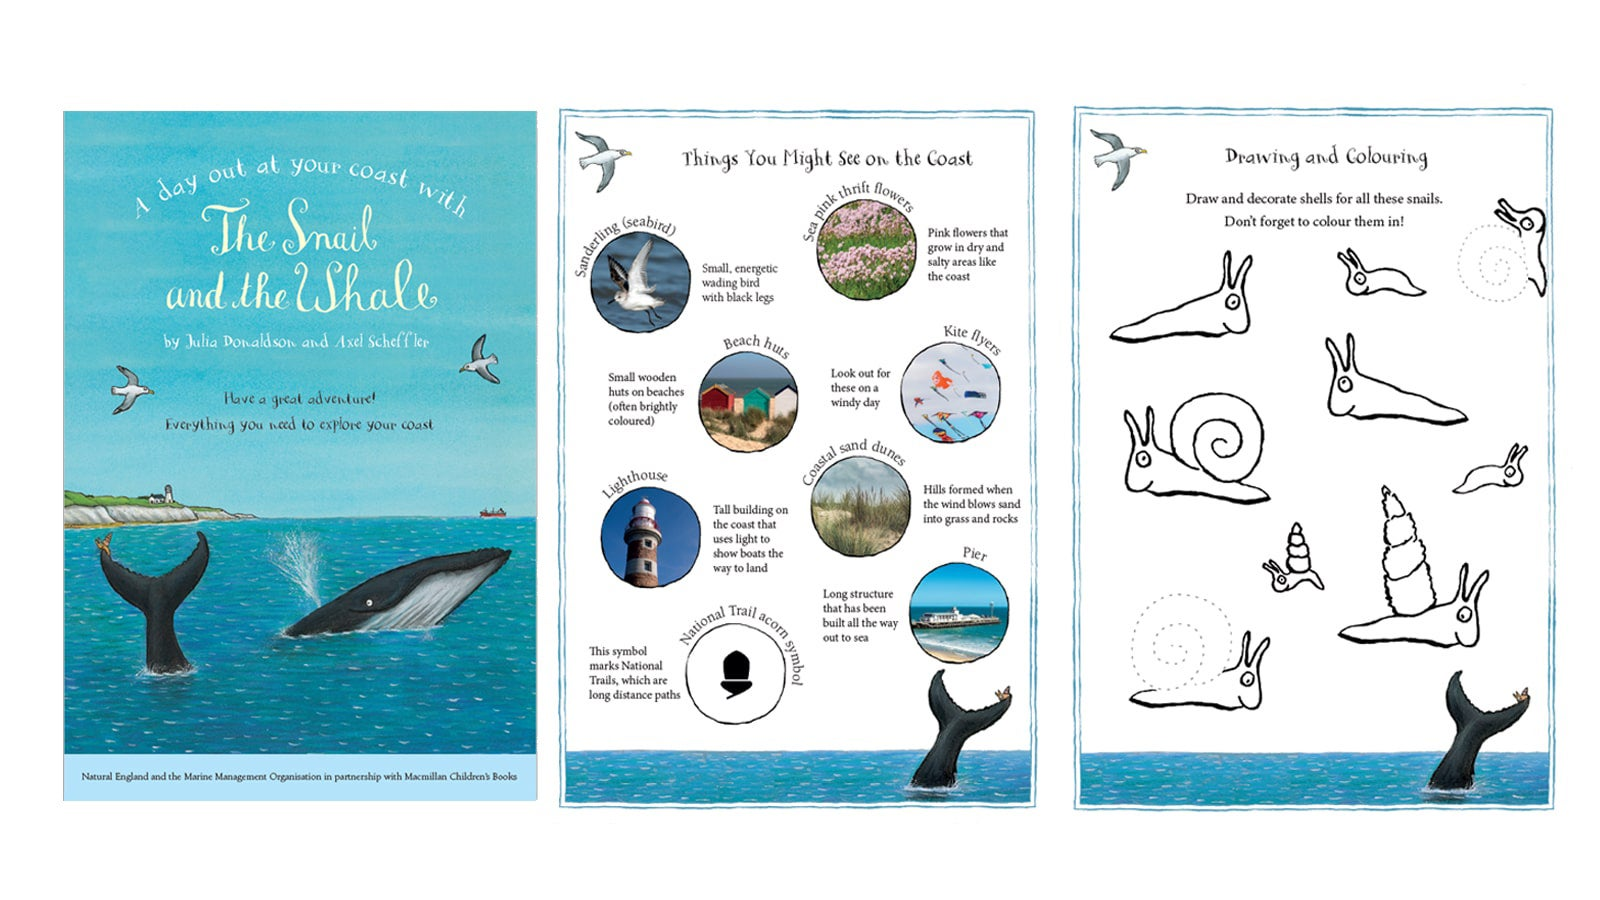 image showing 3 pages of the booklet - the front cover, fun facts and a colouring sheet